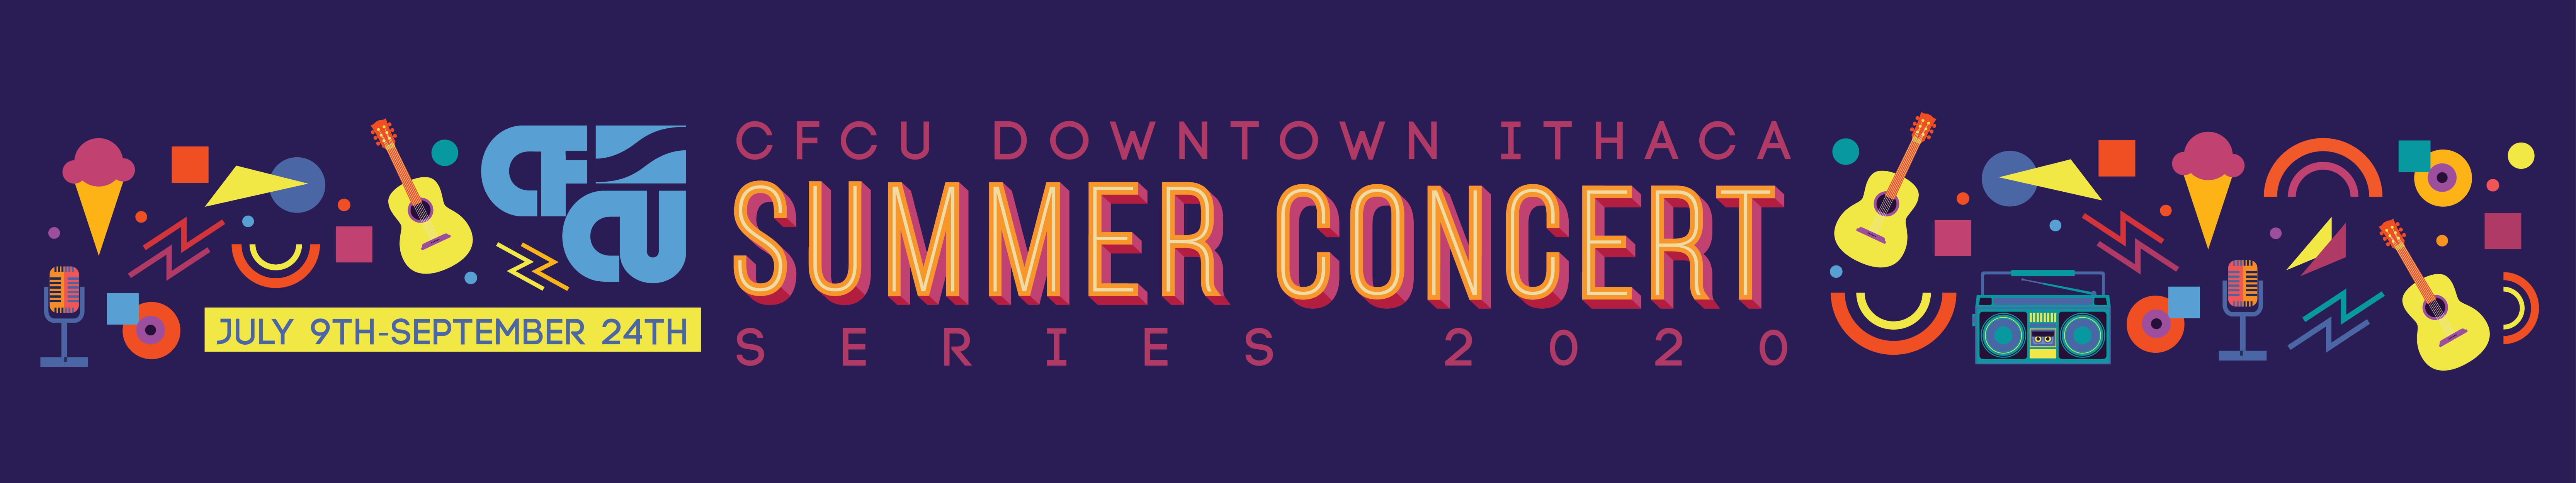 Summer Concert Series Header Image